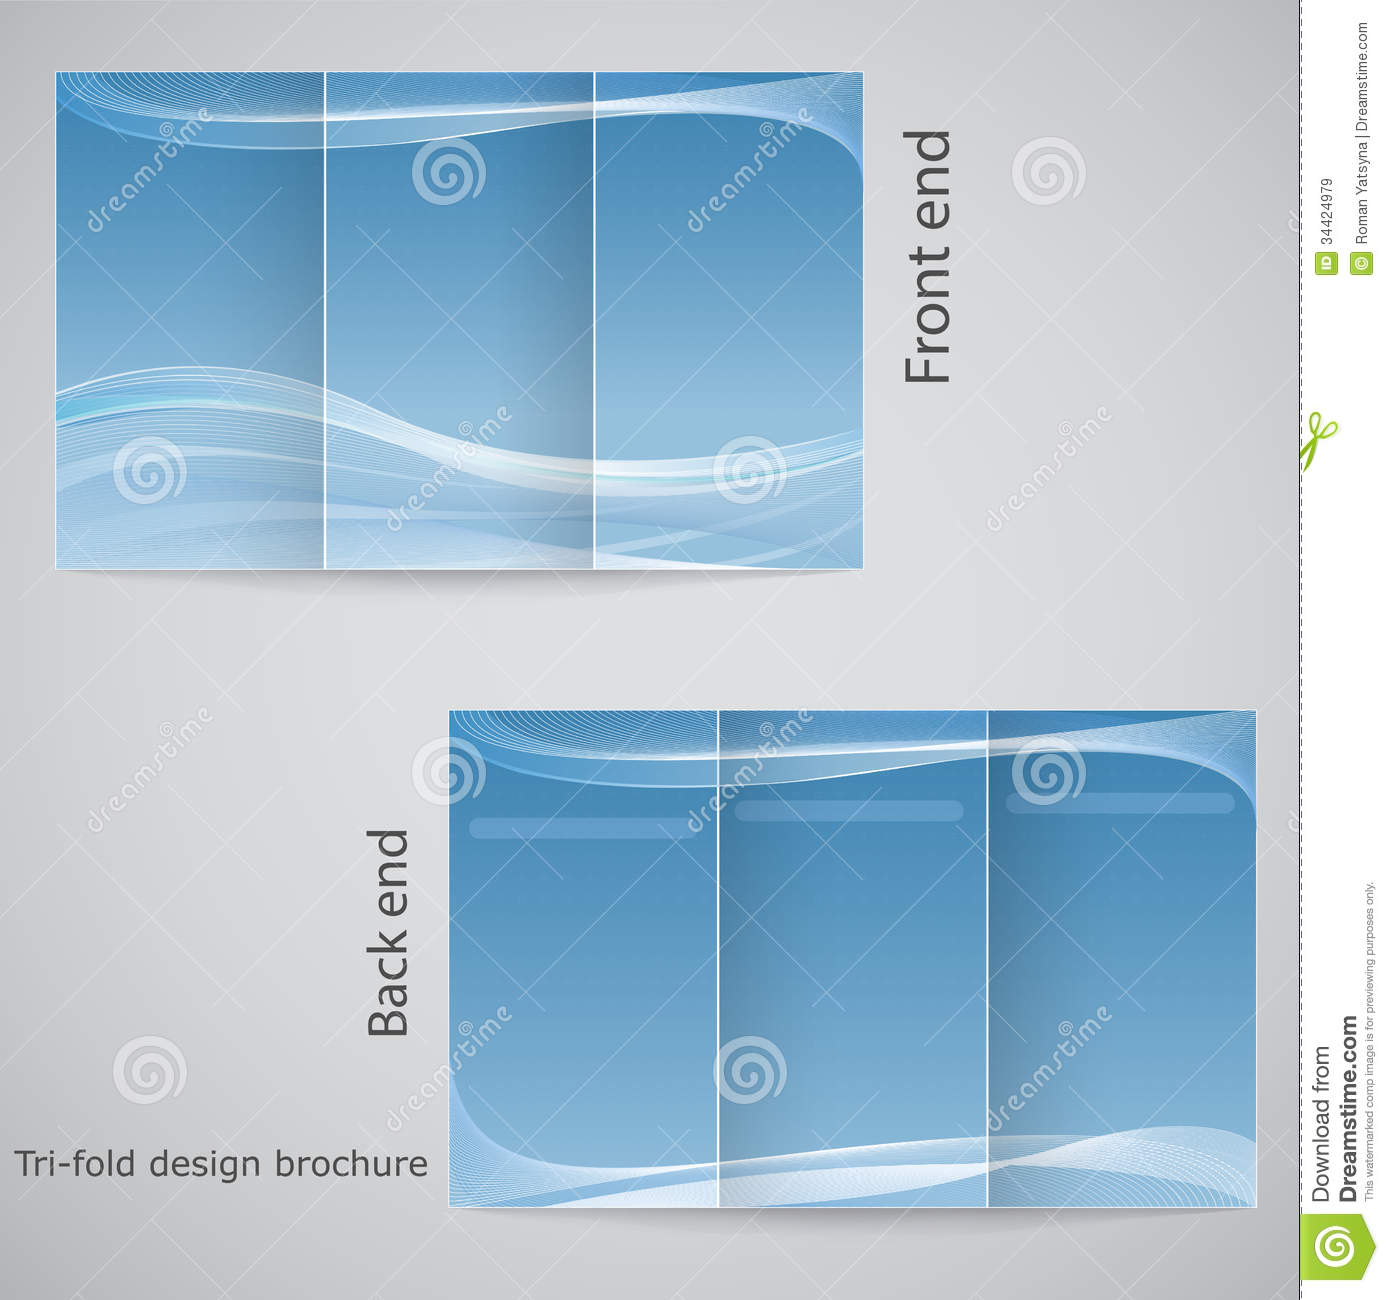 Trifold Brochure Design Stock Vector Illustration Of Handbill - Free tri fold brochure templates download